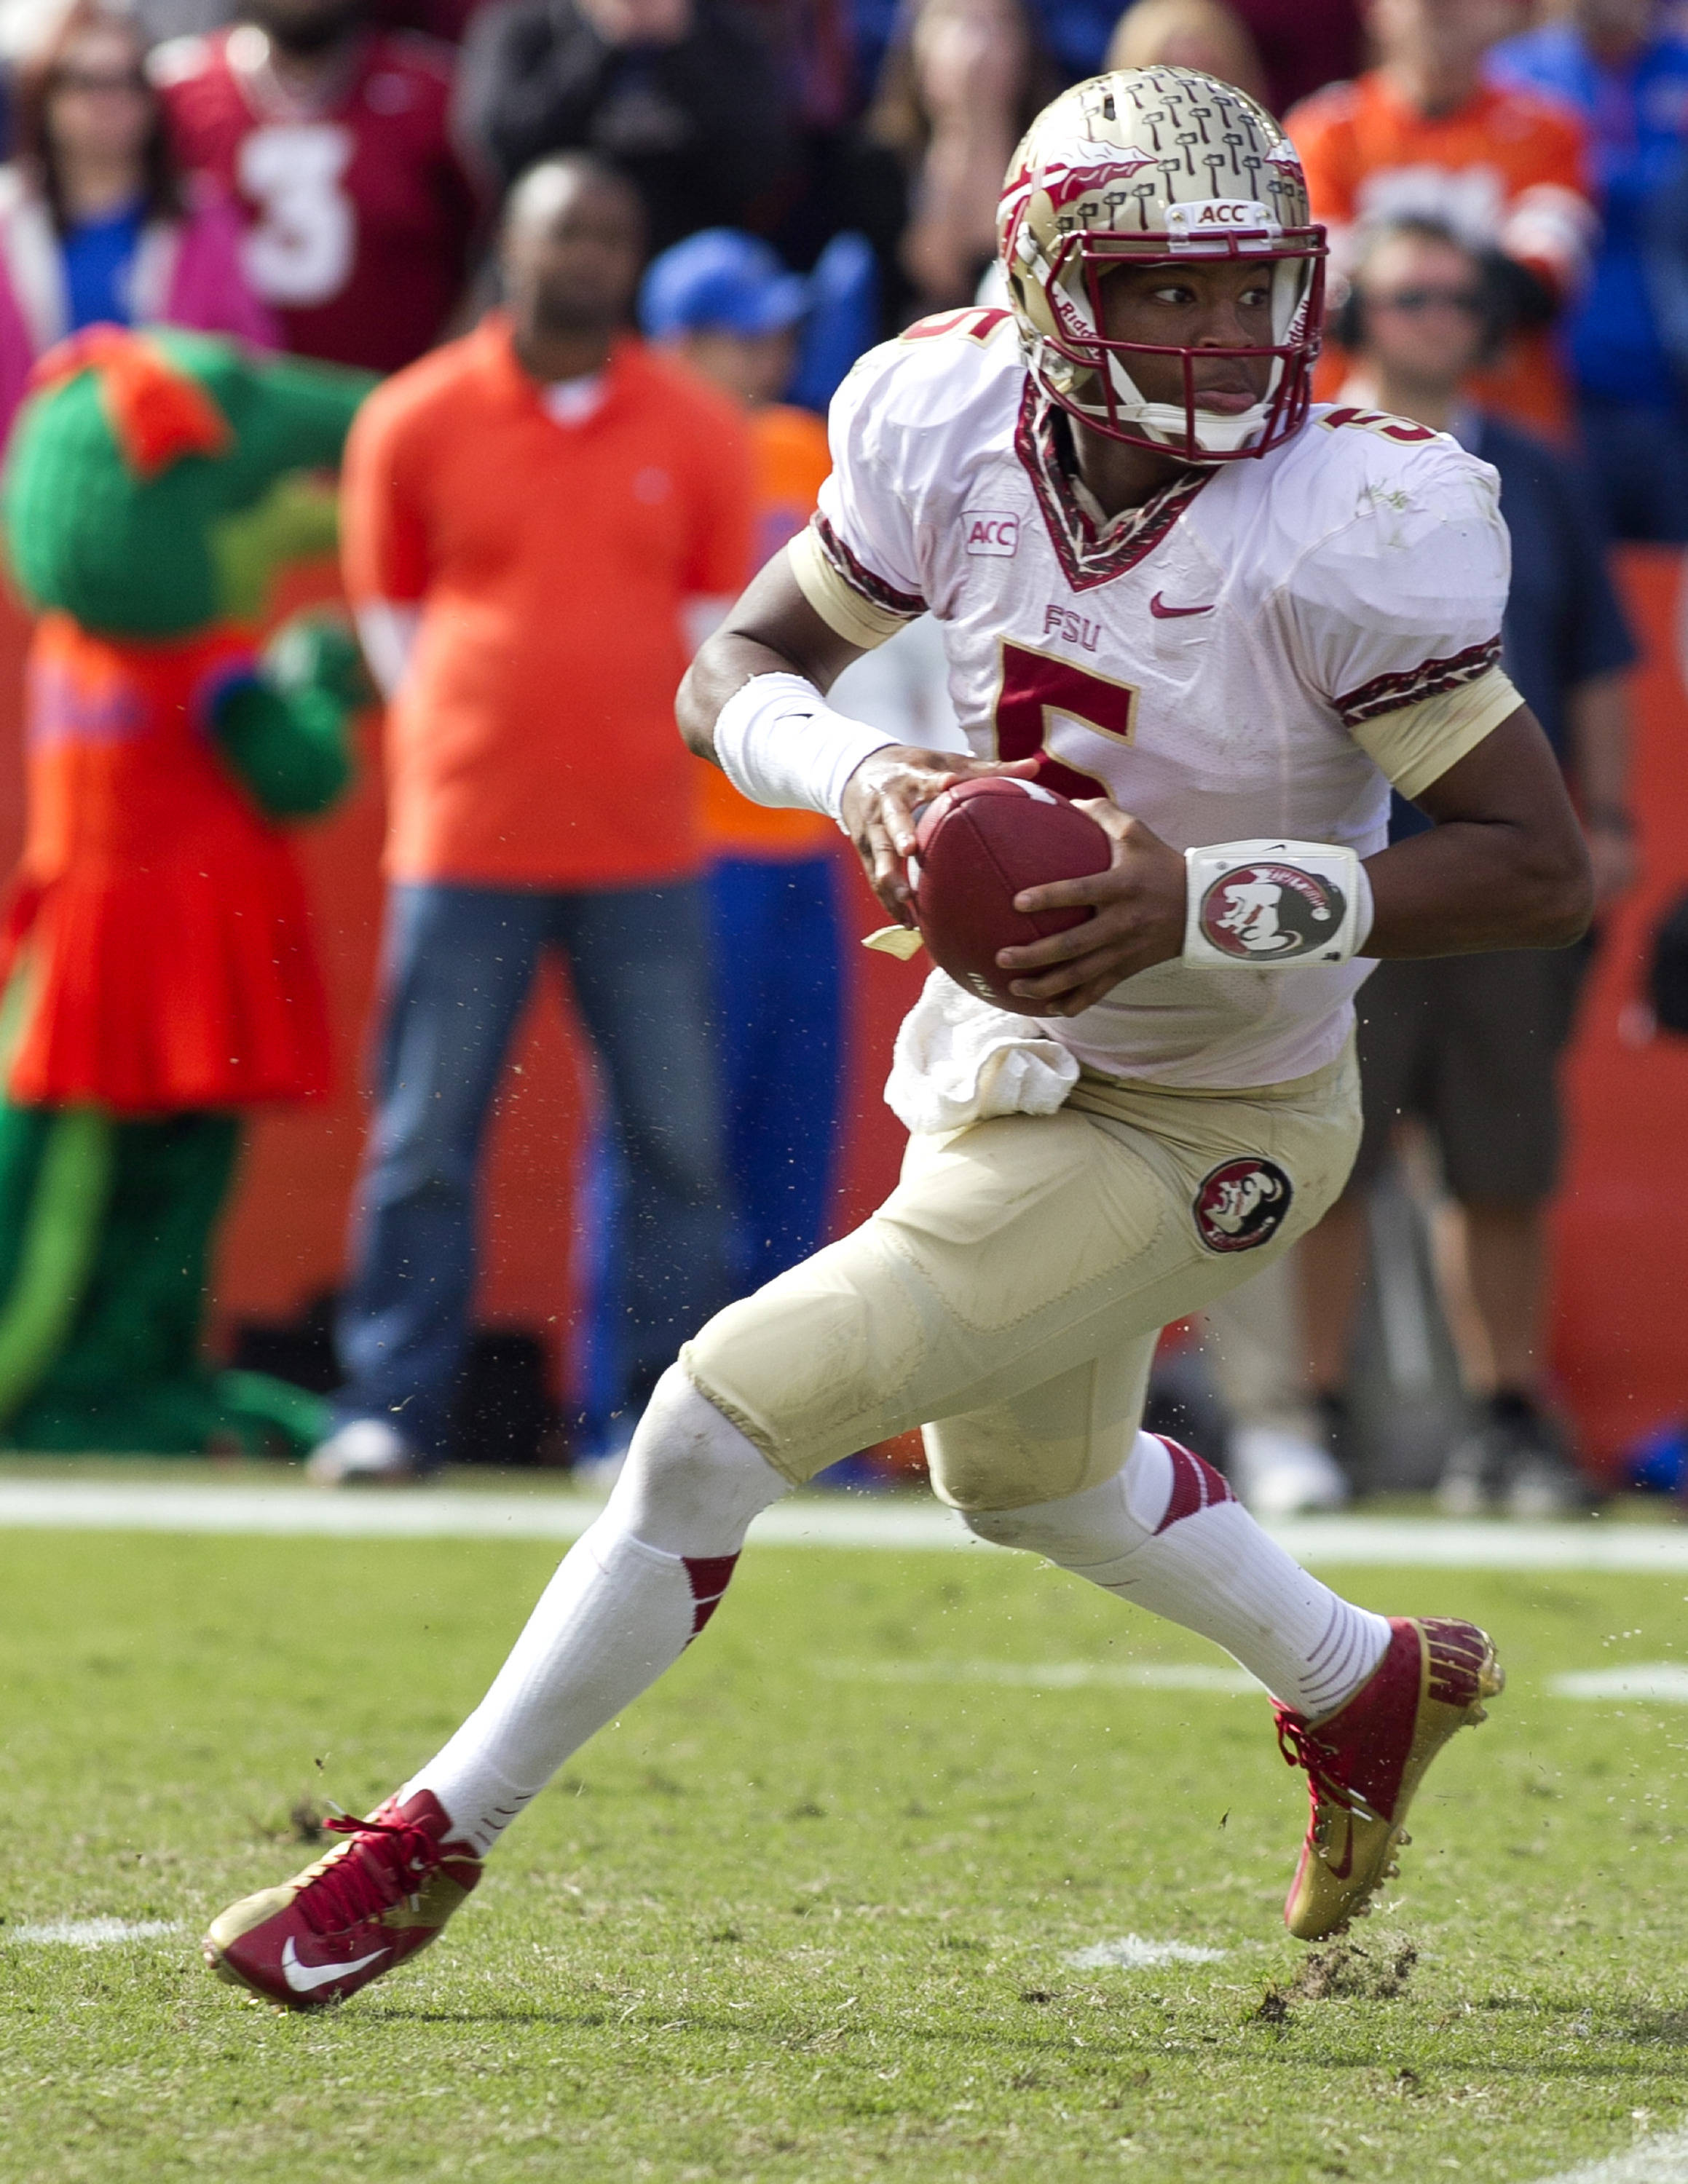 Jameis Winston (5) on a roll out, FSU vs Florida, 11-30-13,  (Photo by Steve Musco)